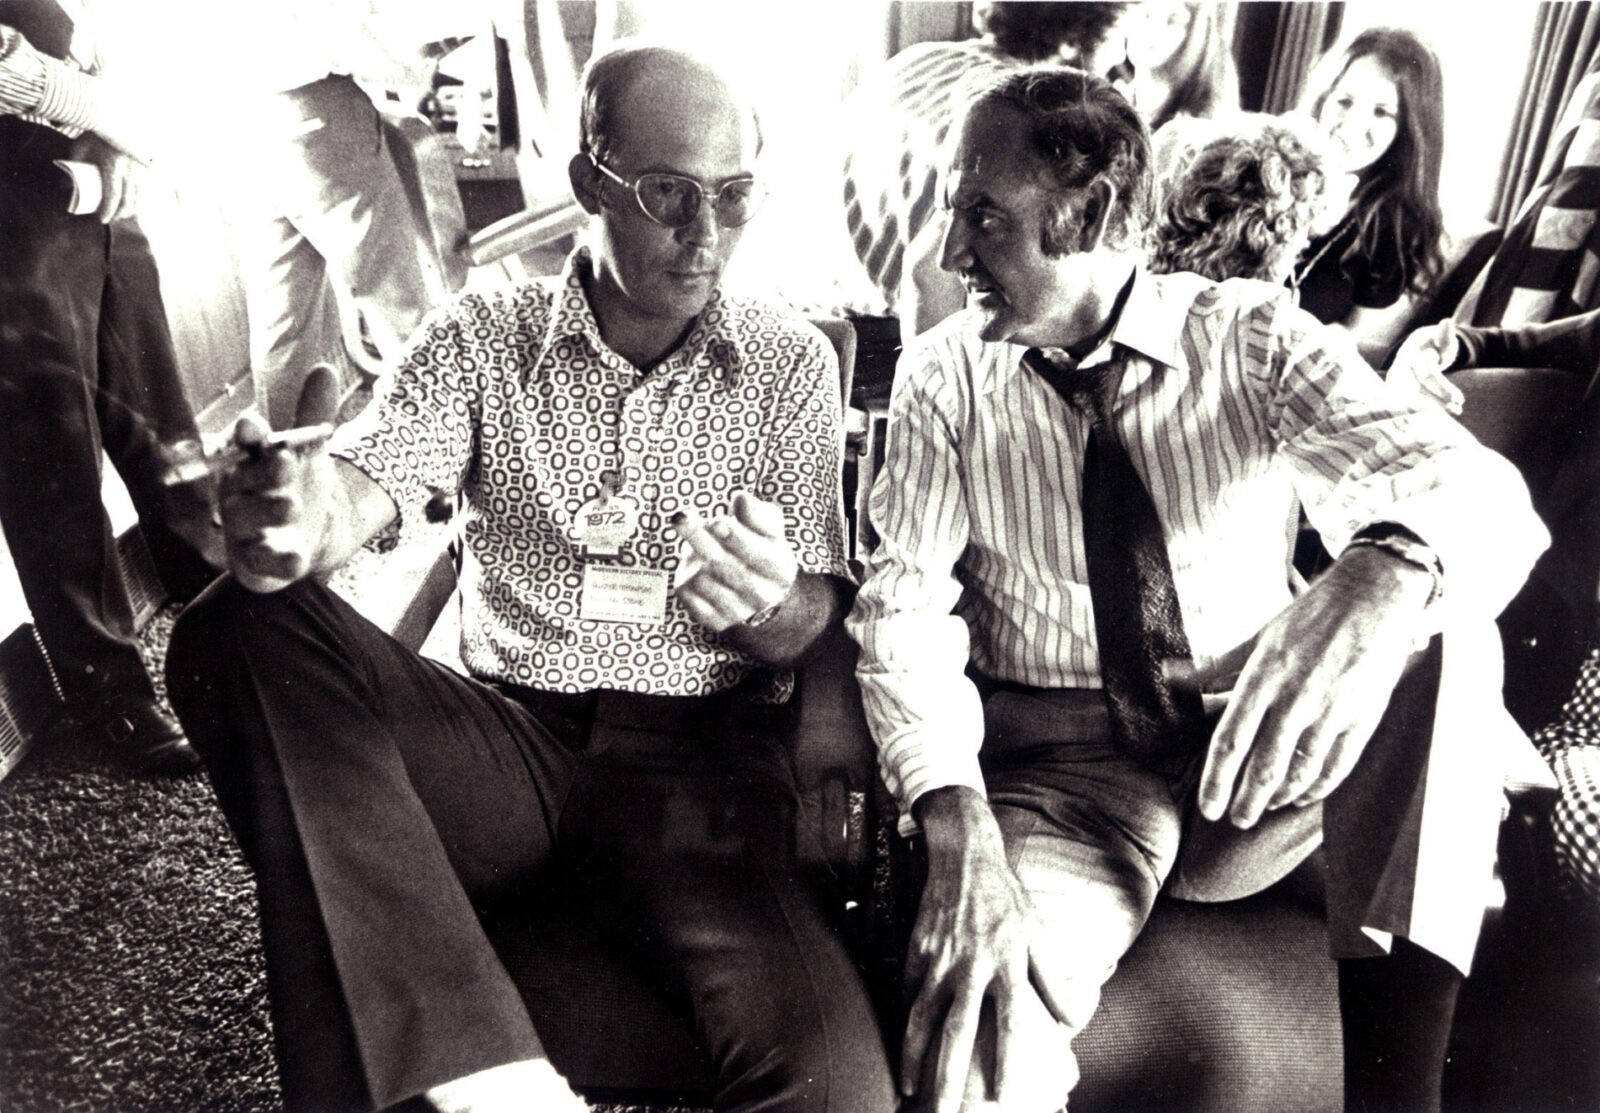 Hunter S. Thompson and counter-culture power (and eventual Dem nom) George McGovern during the 1972 Presidential Campaign.